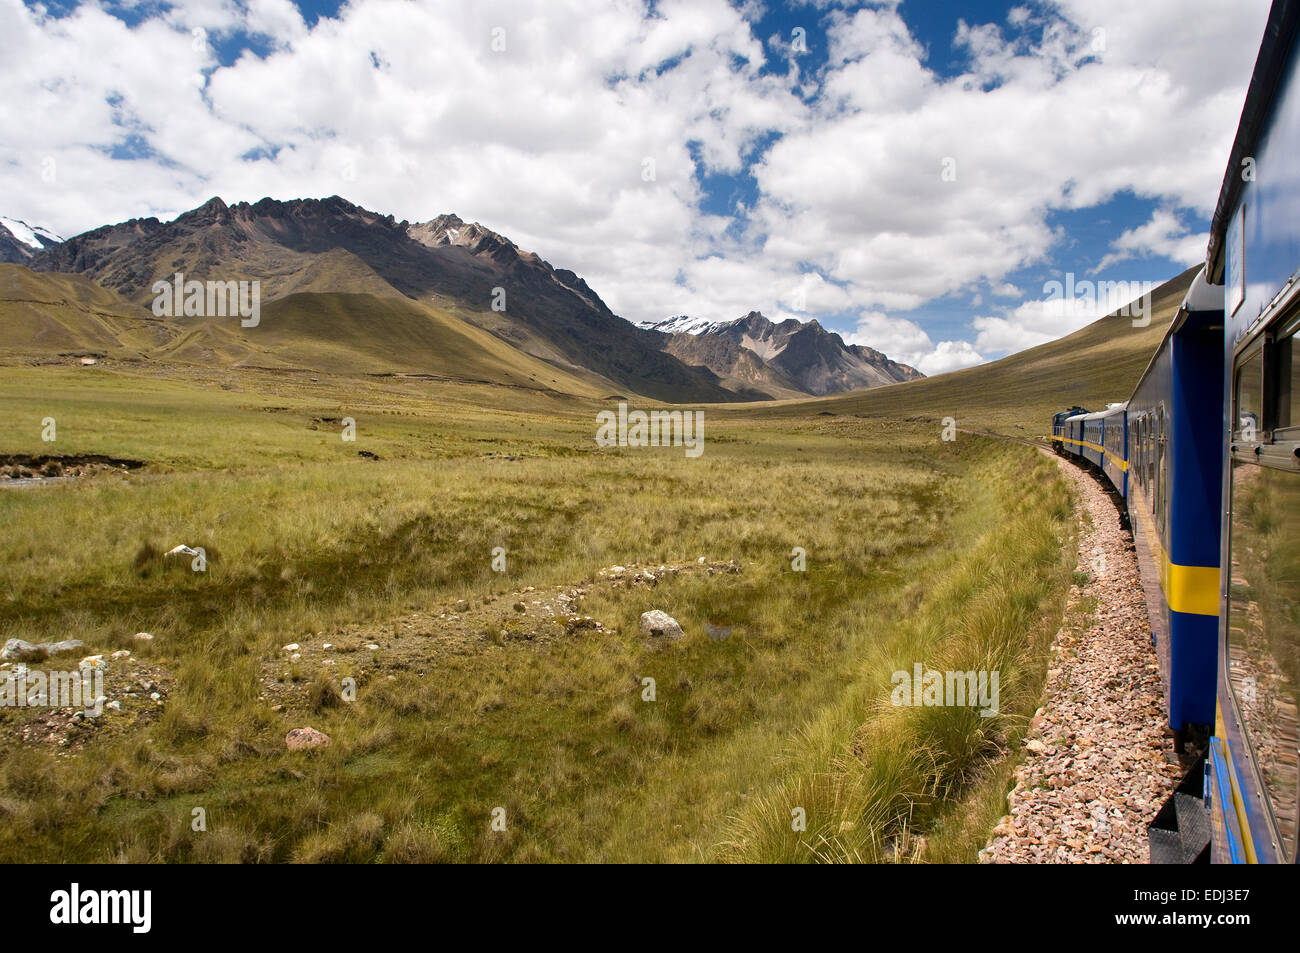 Andean Explorer, luxury train from Cusco to Puno. Peruvian altiplano landscape seen from inside the Andean Explorer - Stock Image